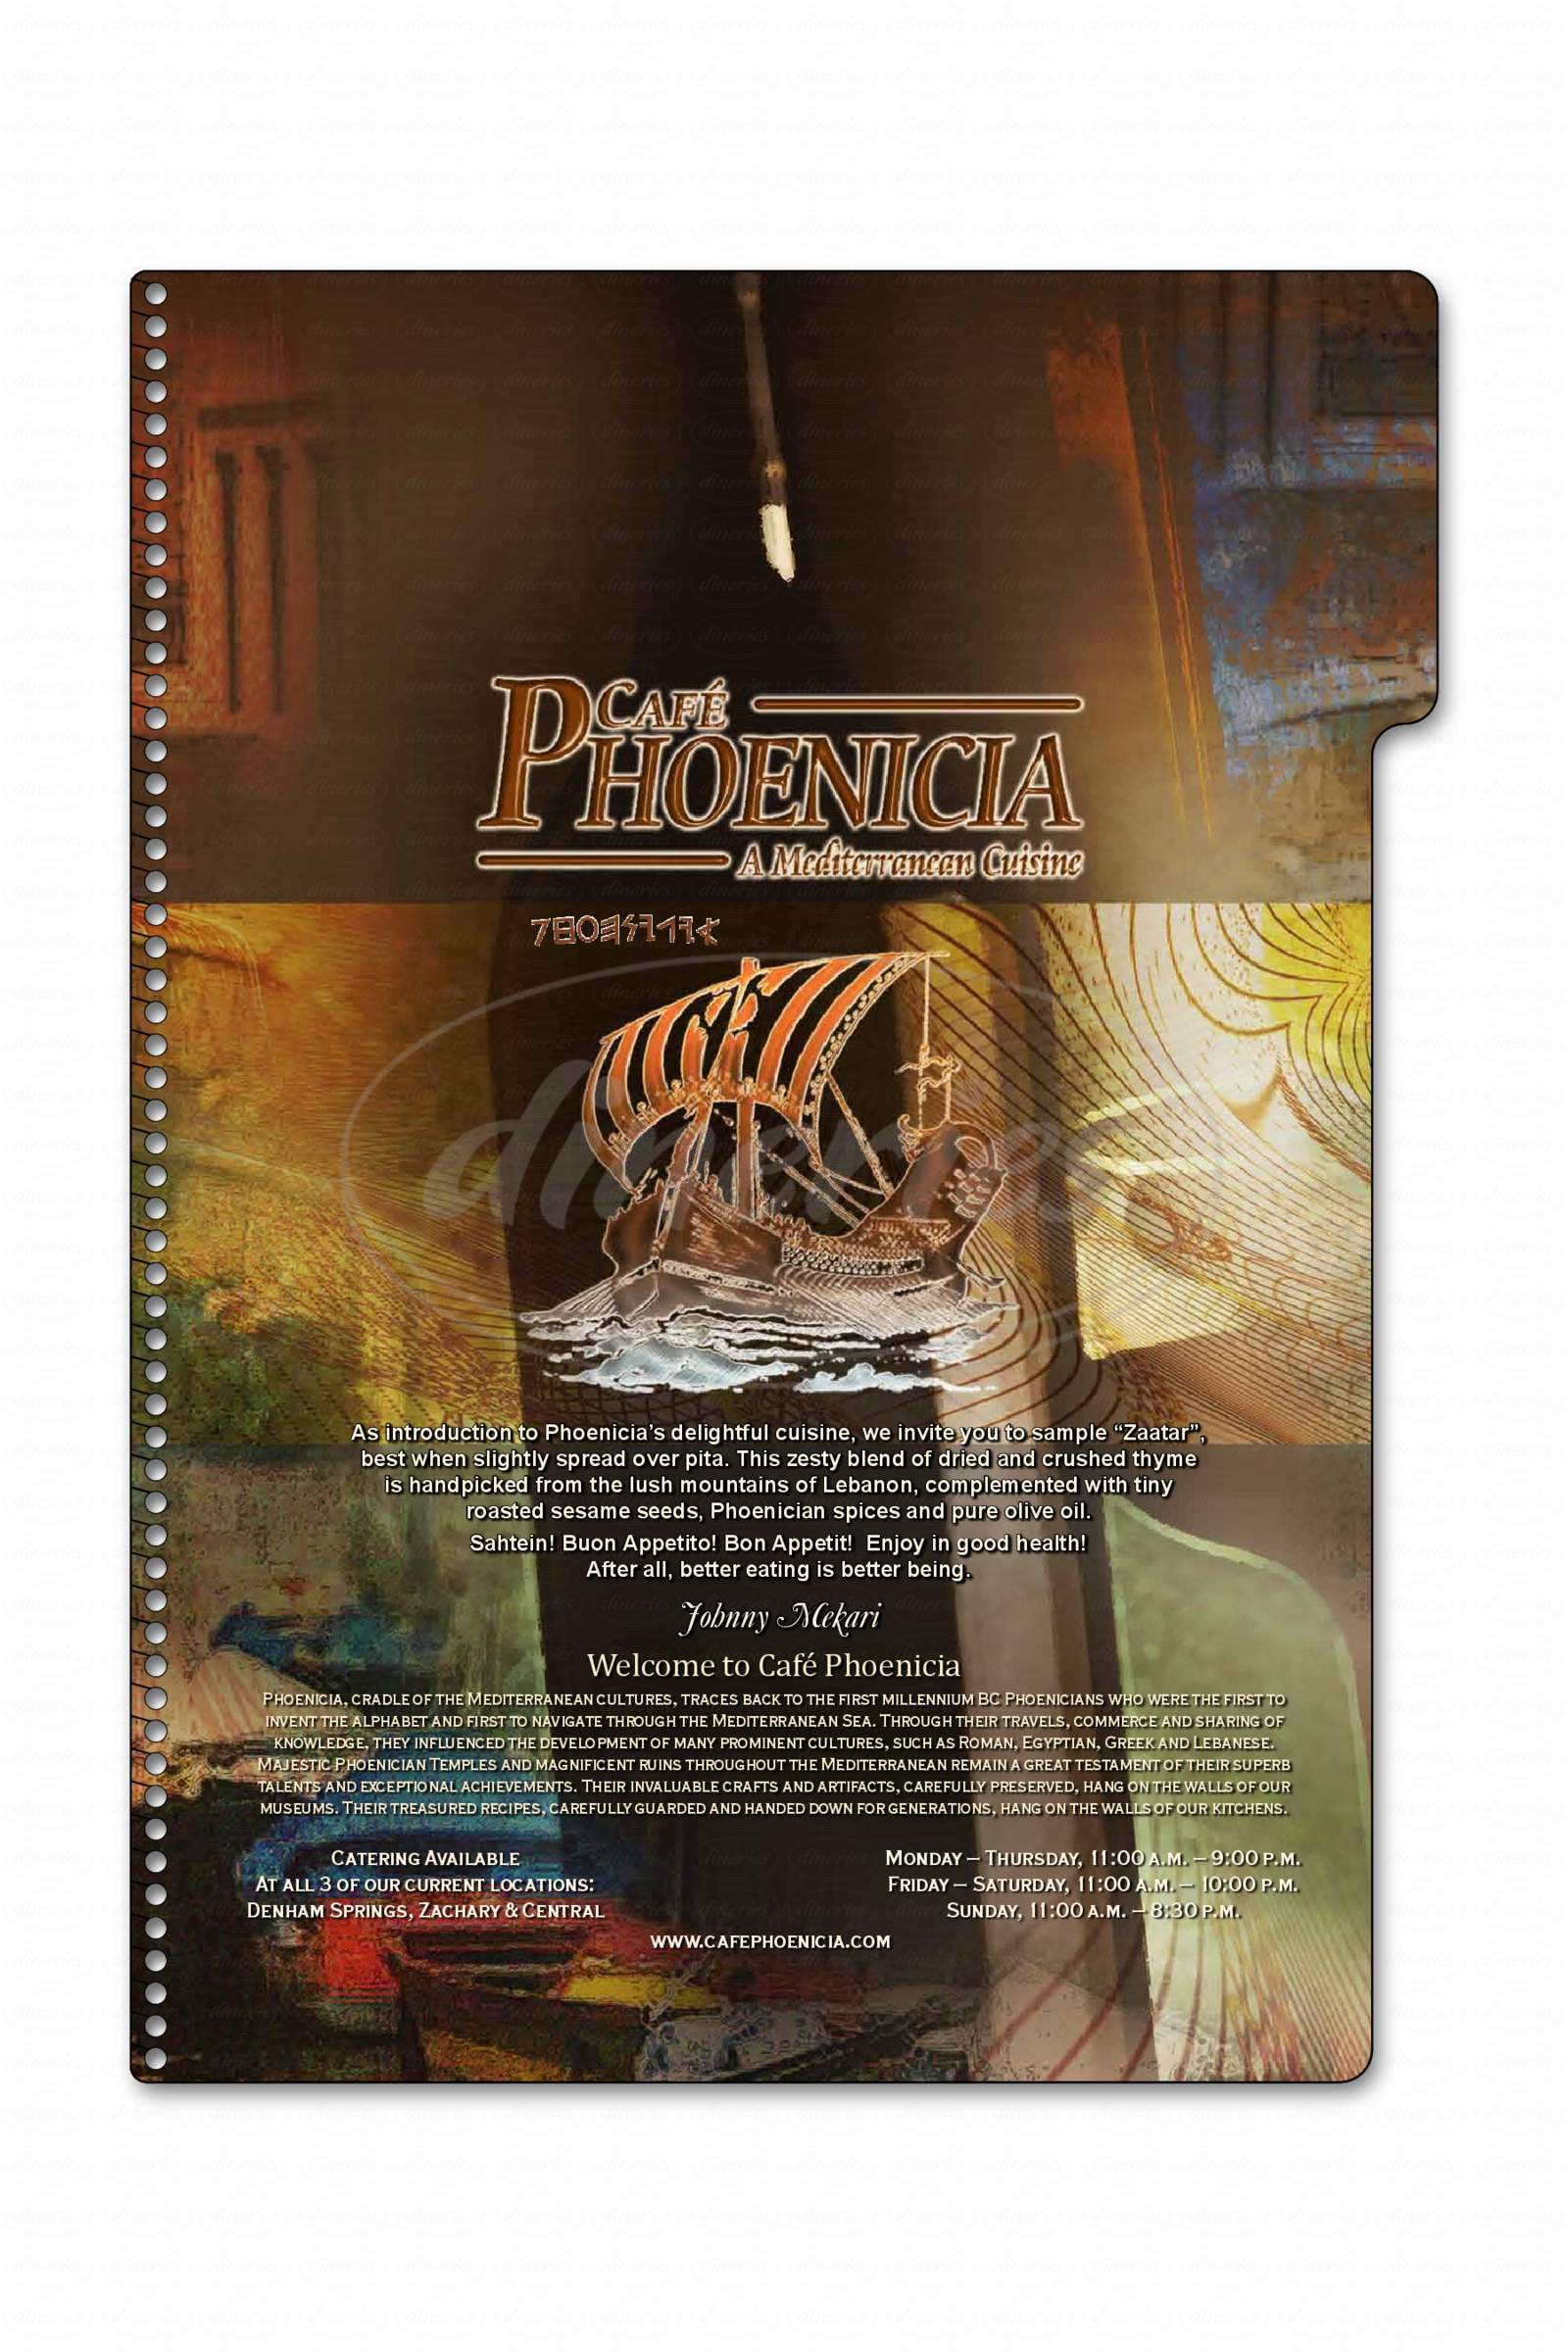 menu for Cafe Phoenicia